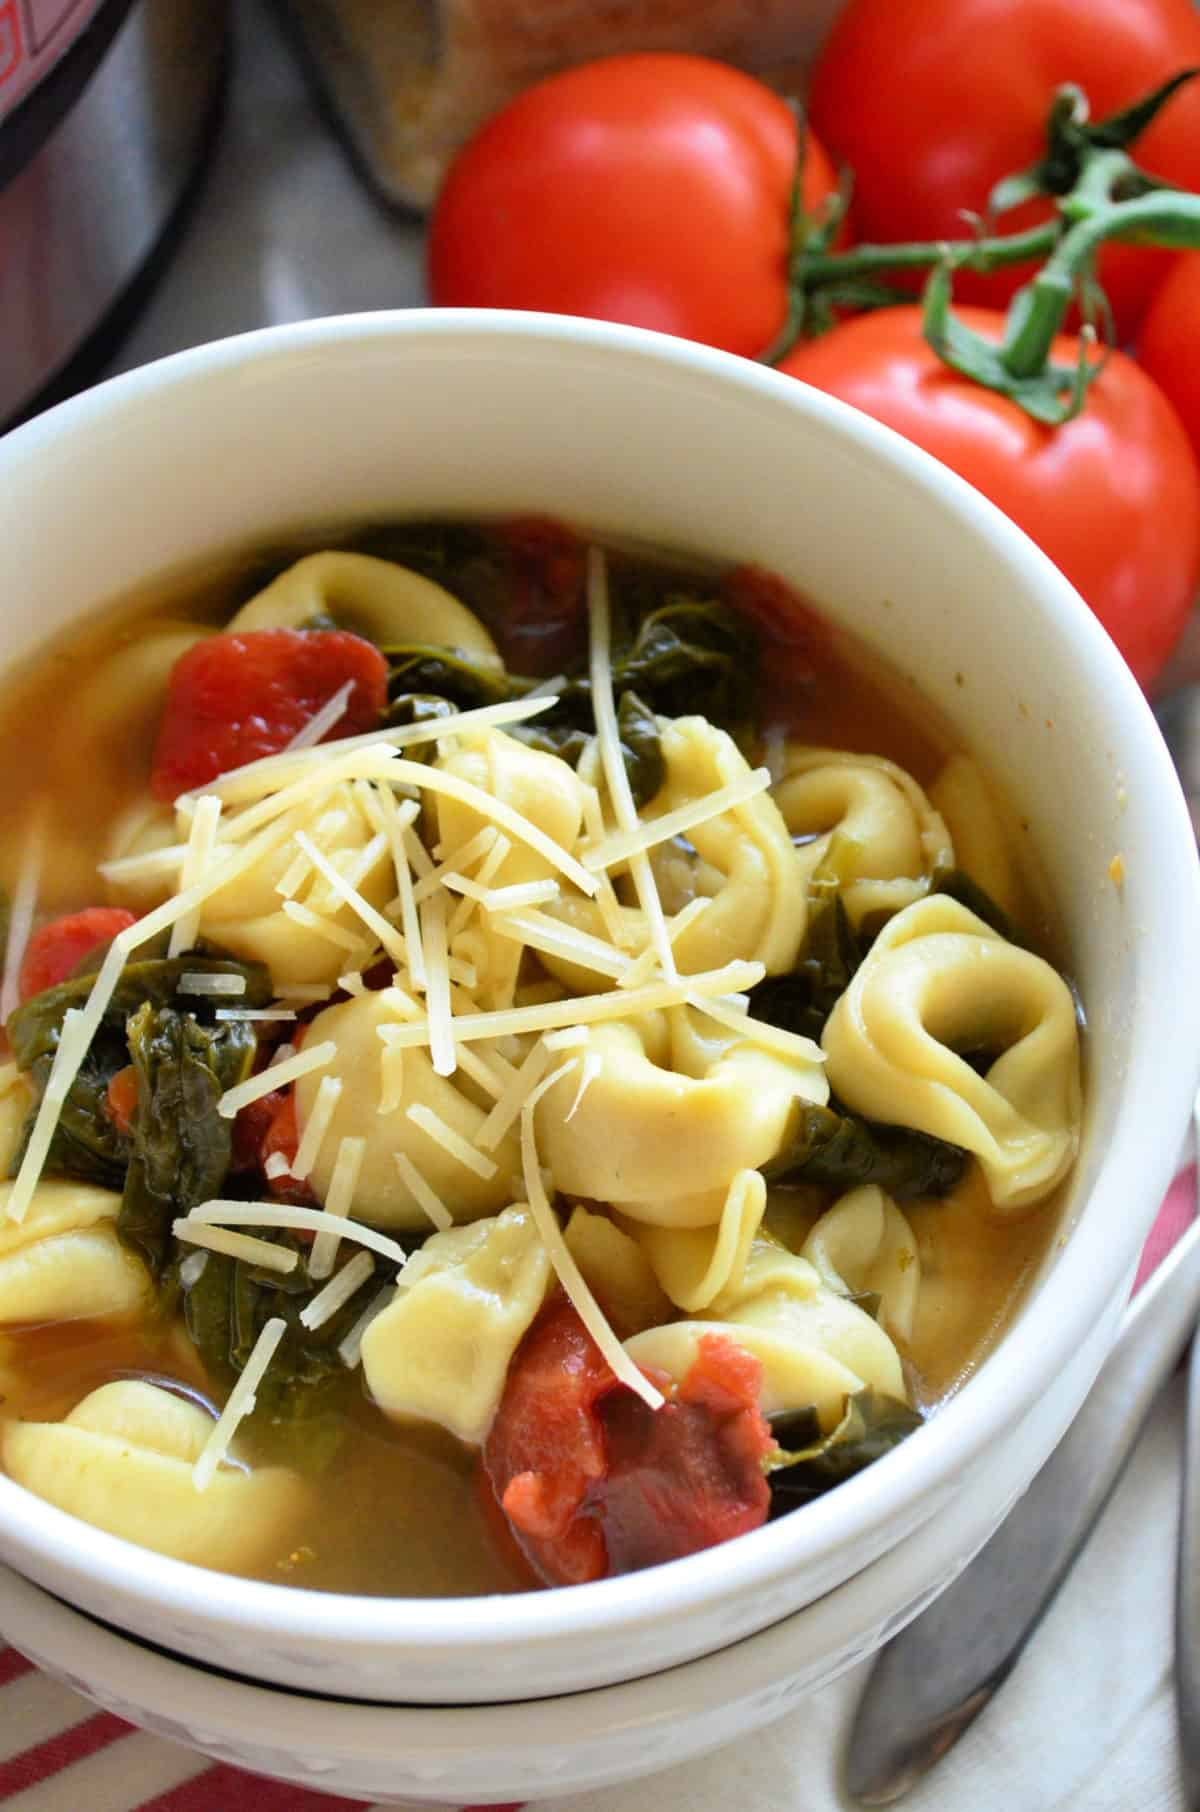 close up top view of bowl filled with broth, tortellinis, tomatoes, spinach, and topped with shredded cheese.